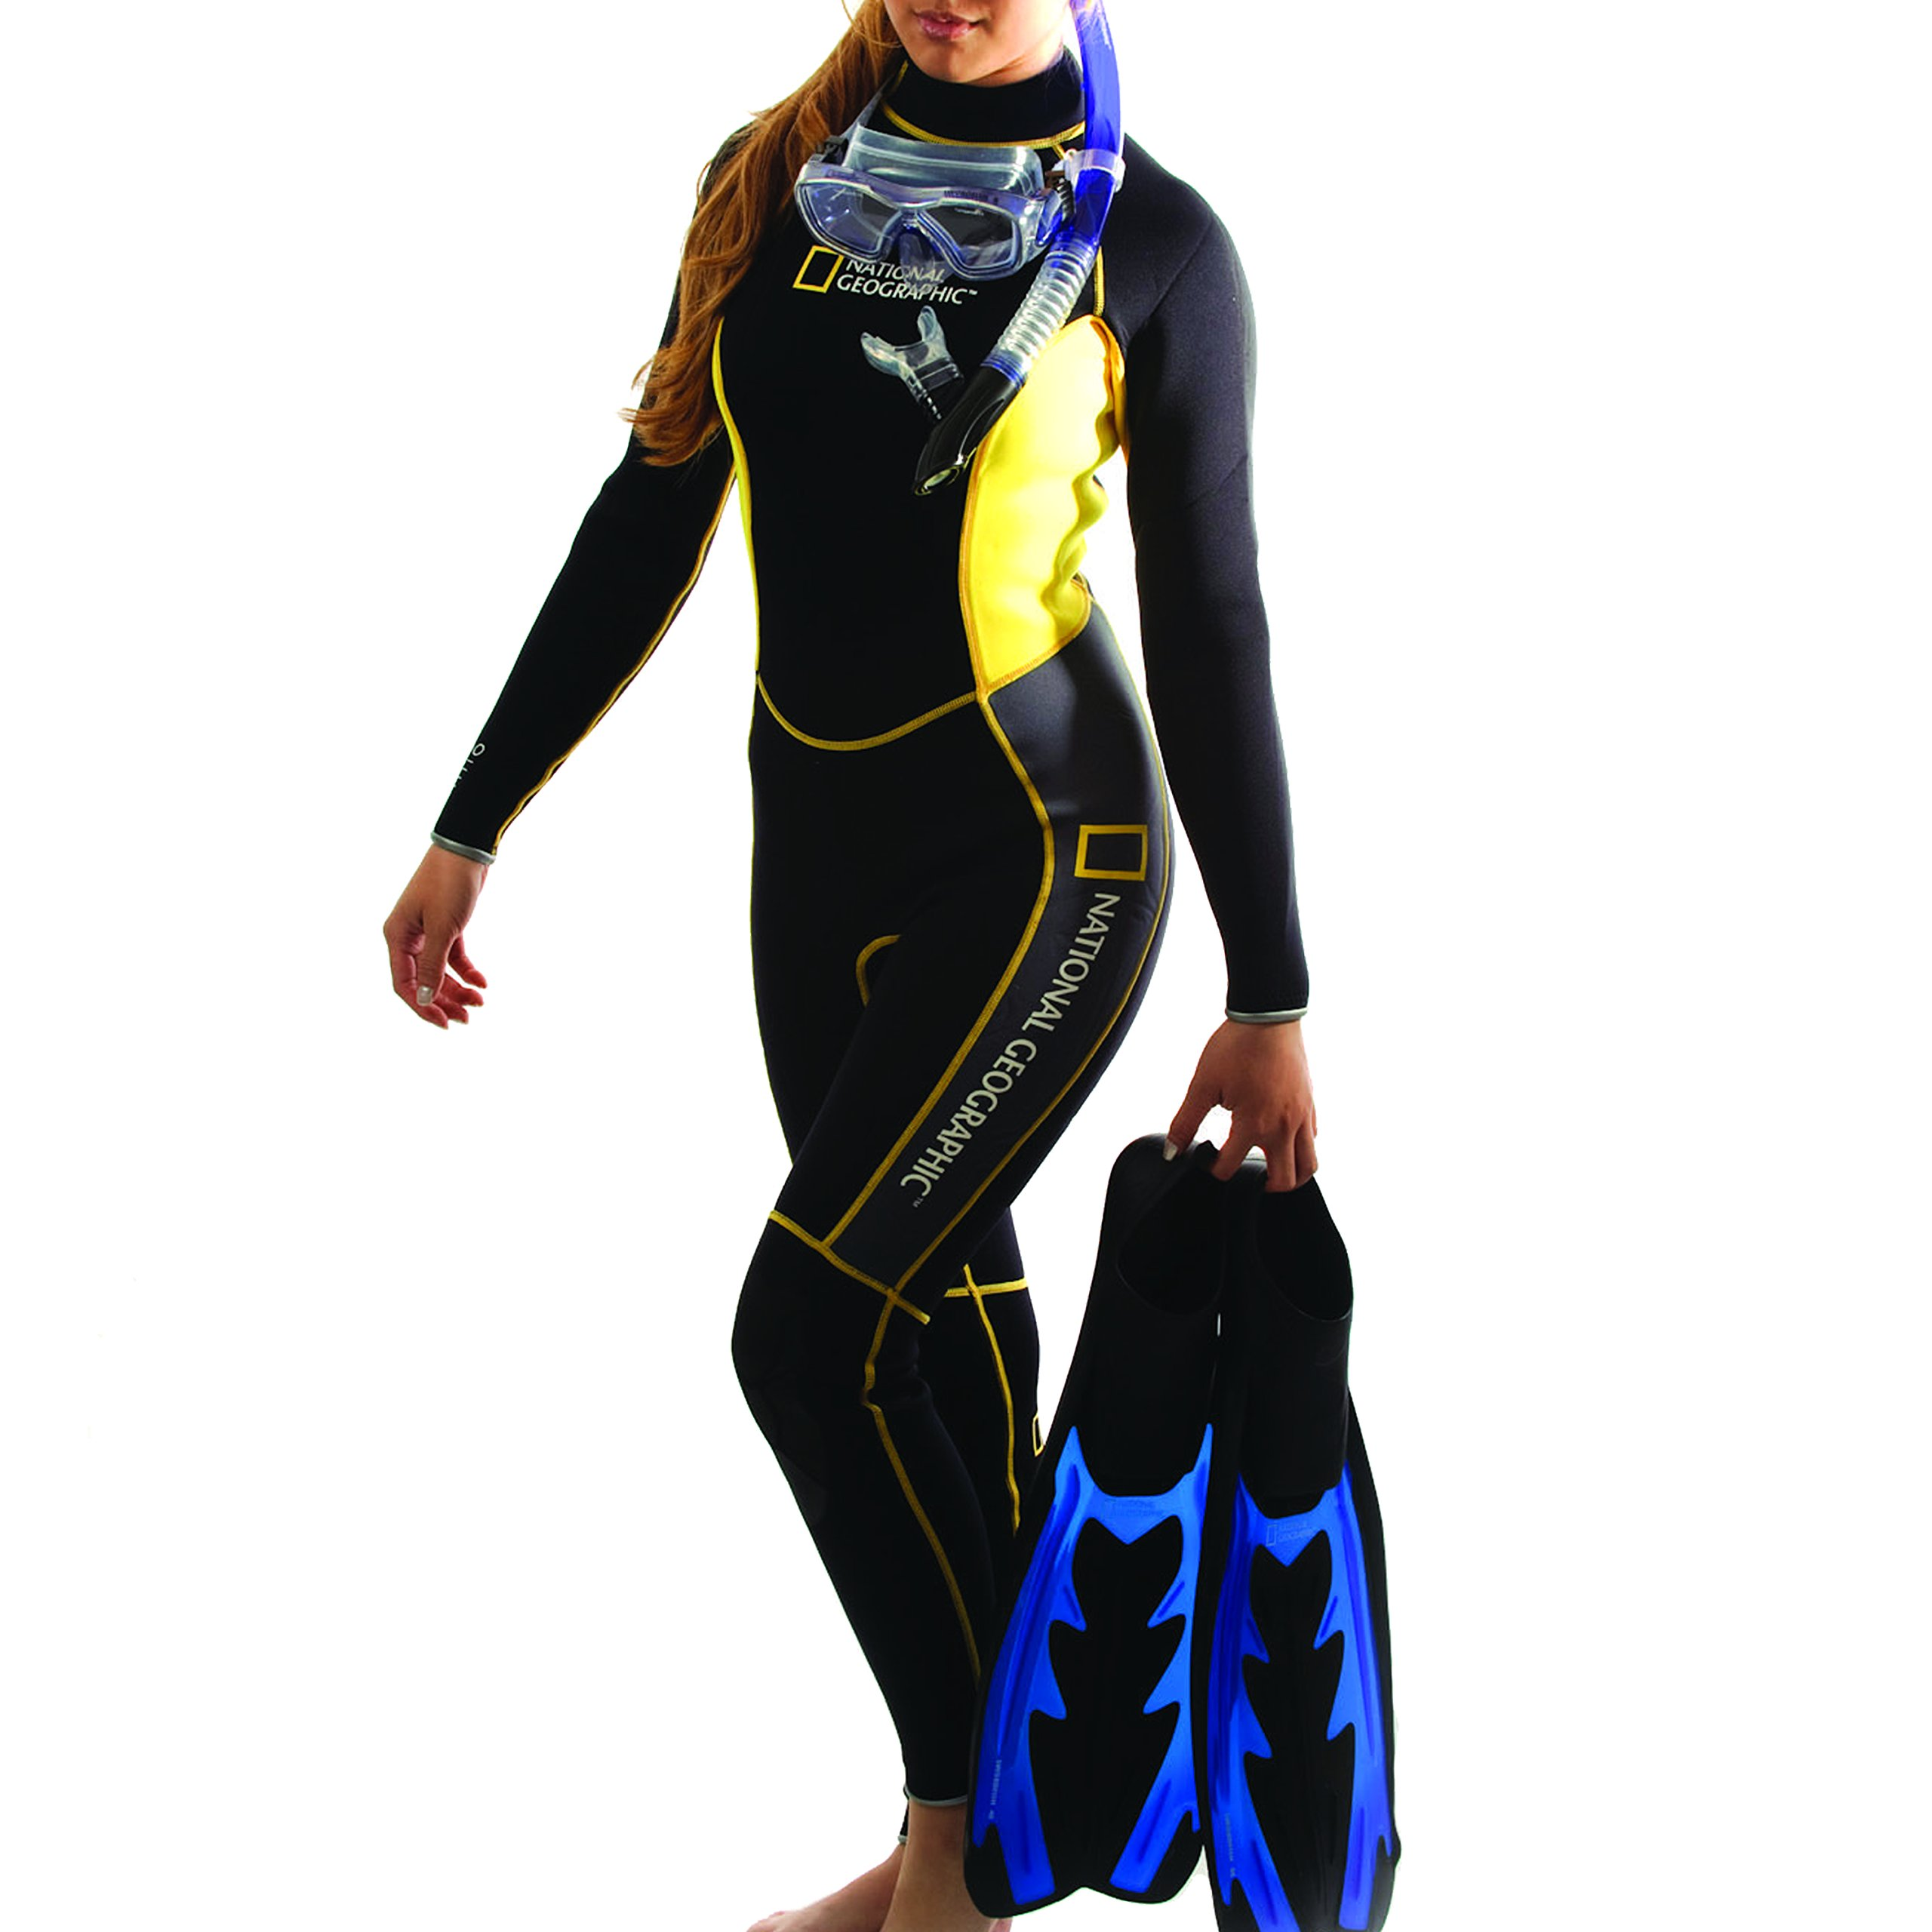 National Geographic Snorkeler Ladies Classic 1 Piece Suit, Medium 5667